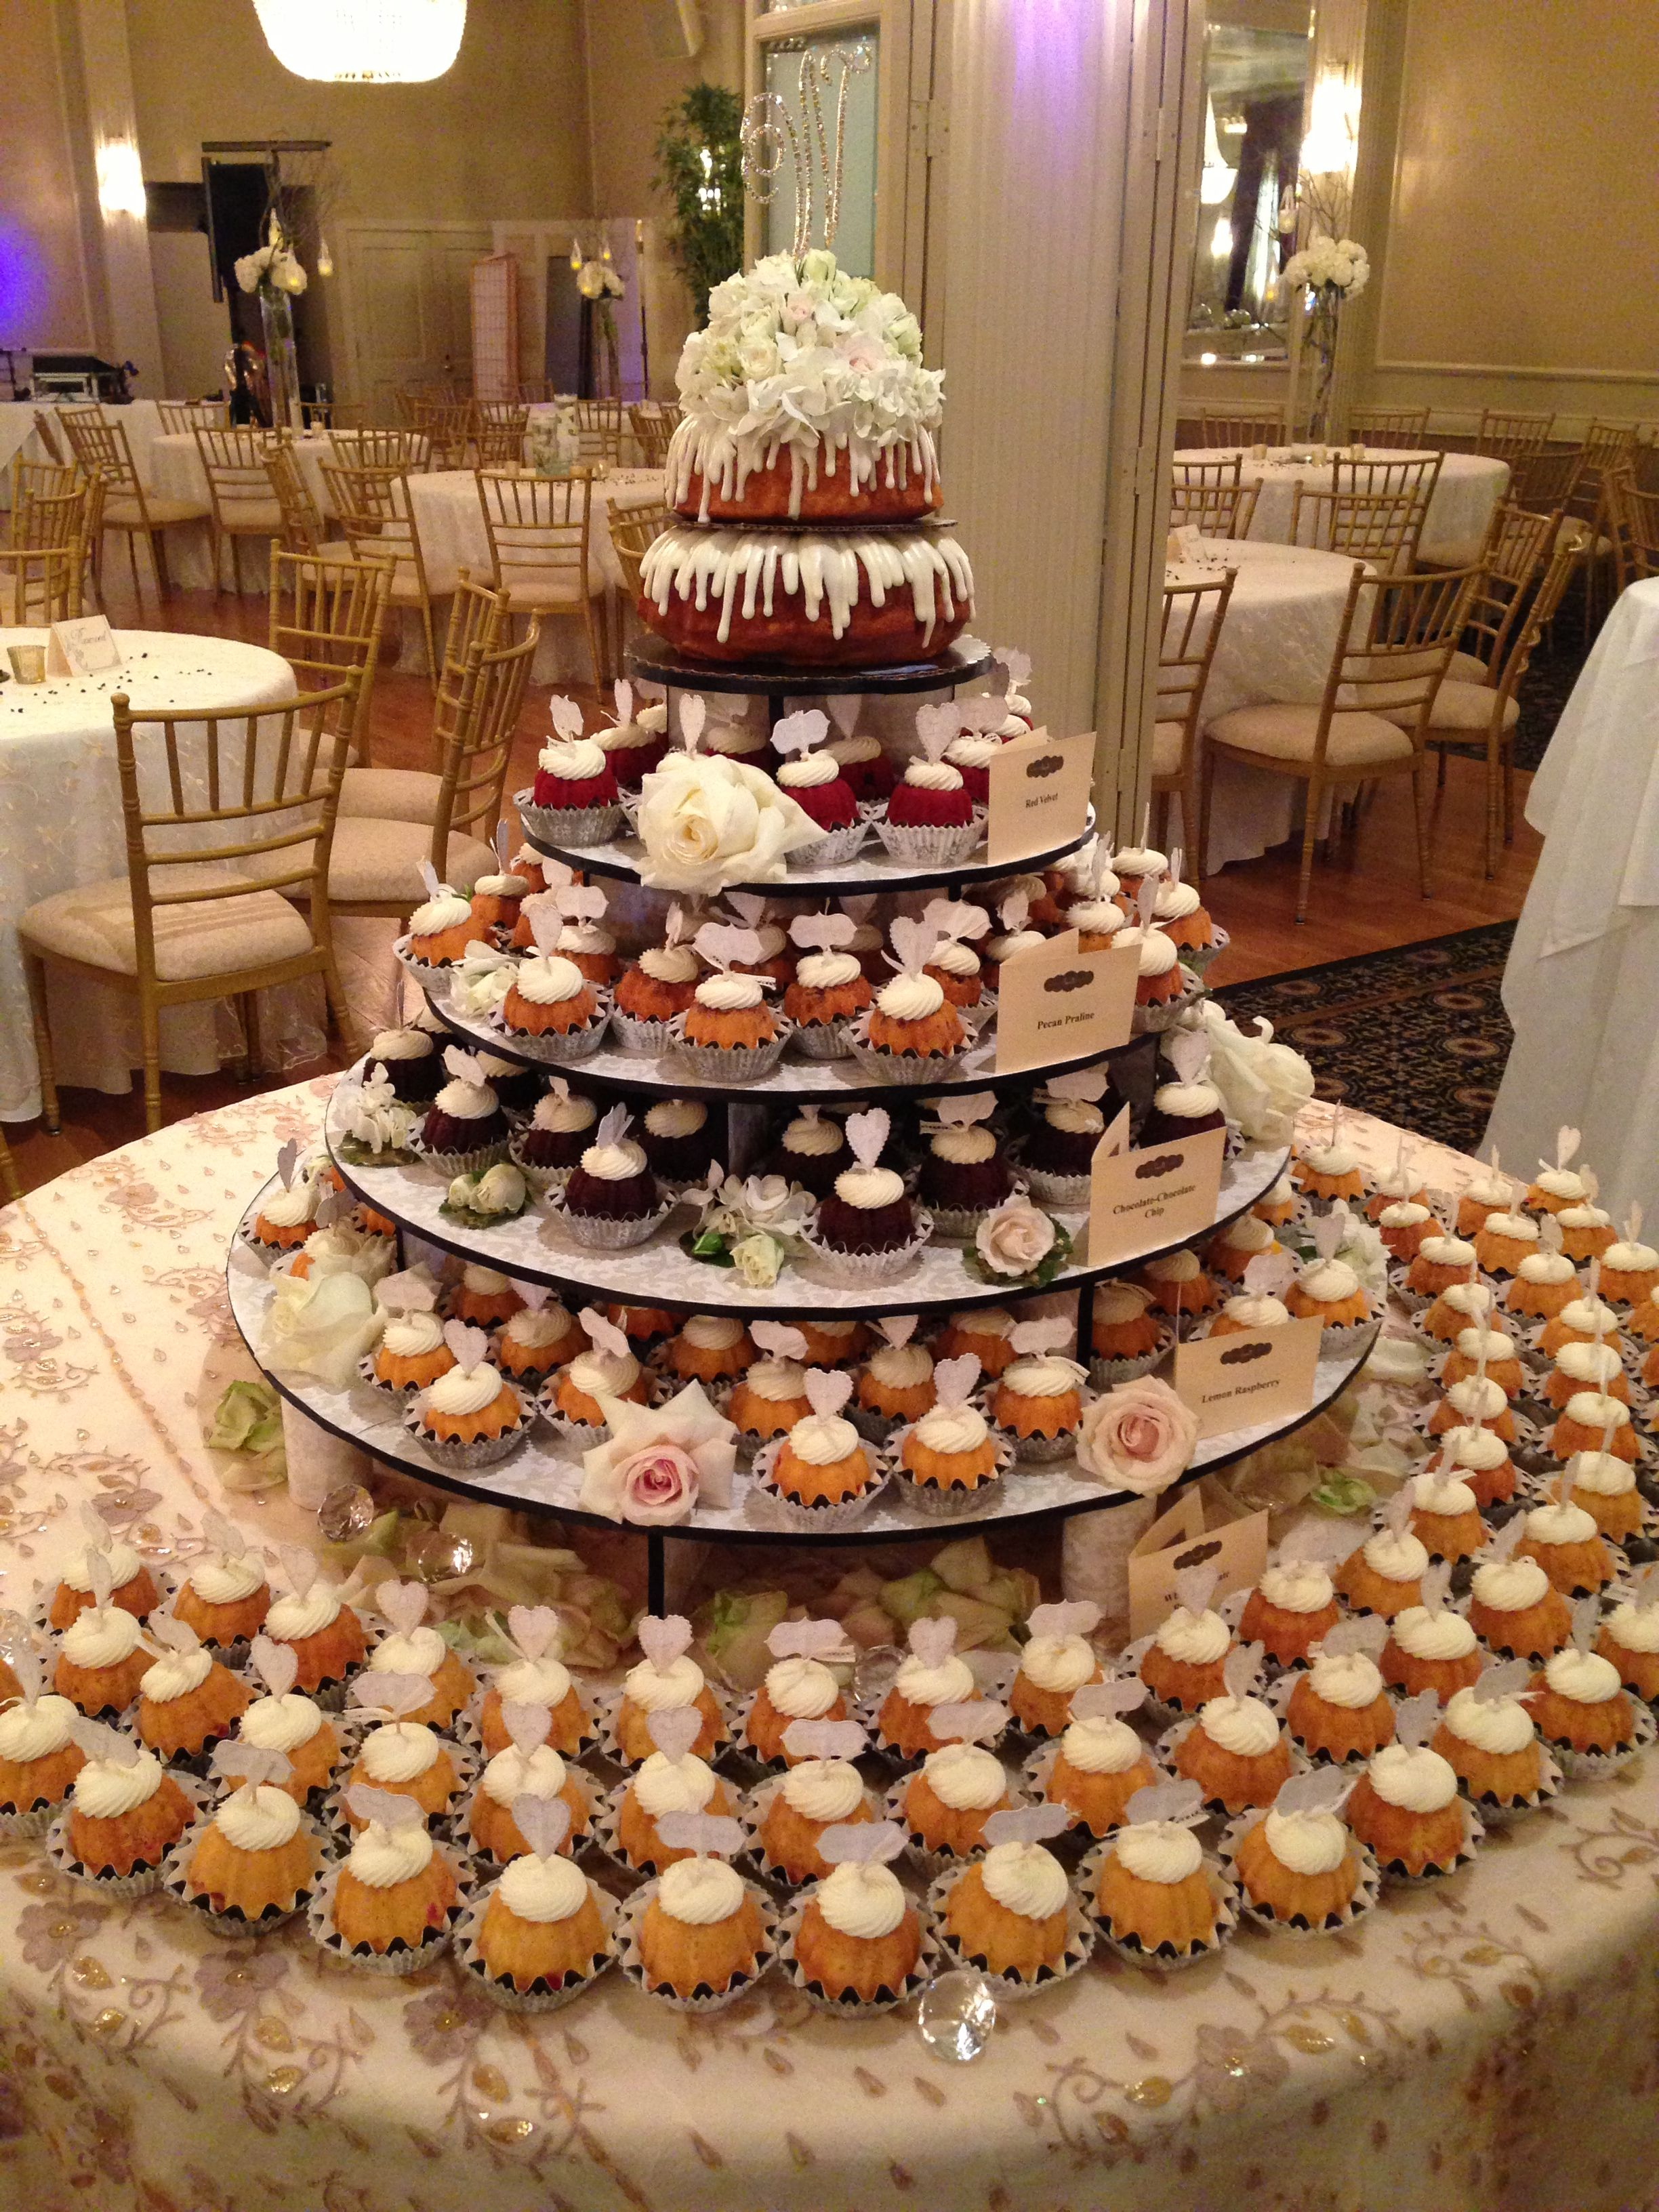 Maybe This Is The Way To Go And Just Have A Small Cake